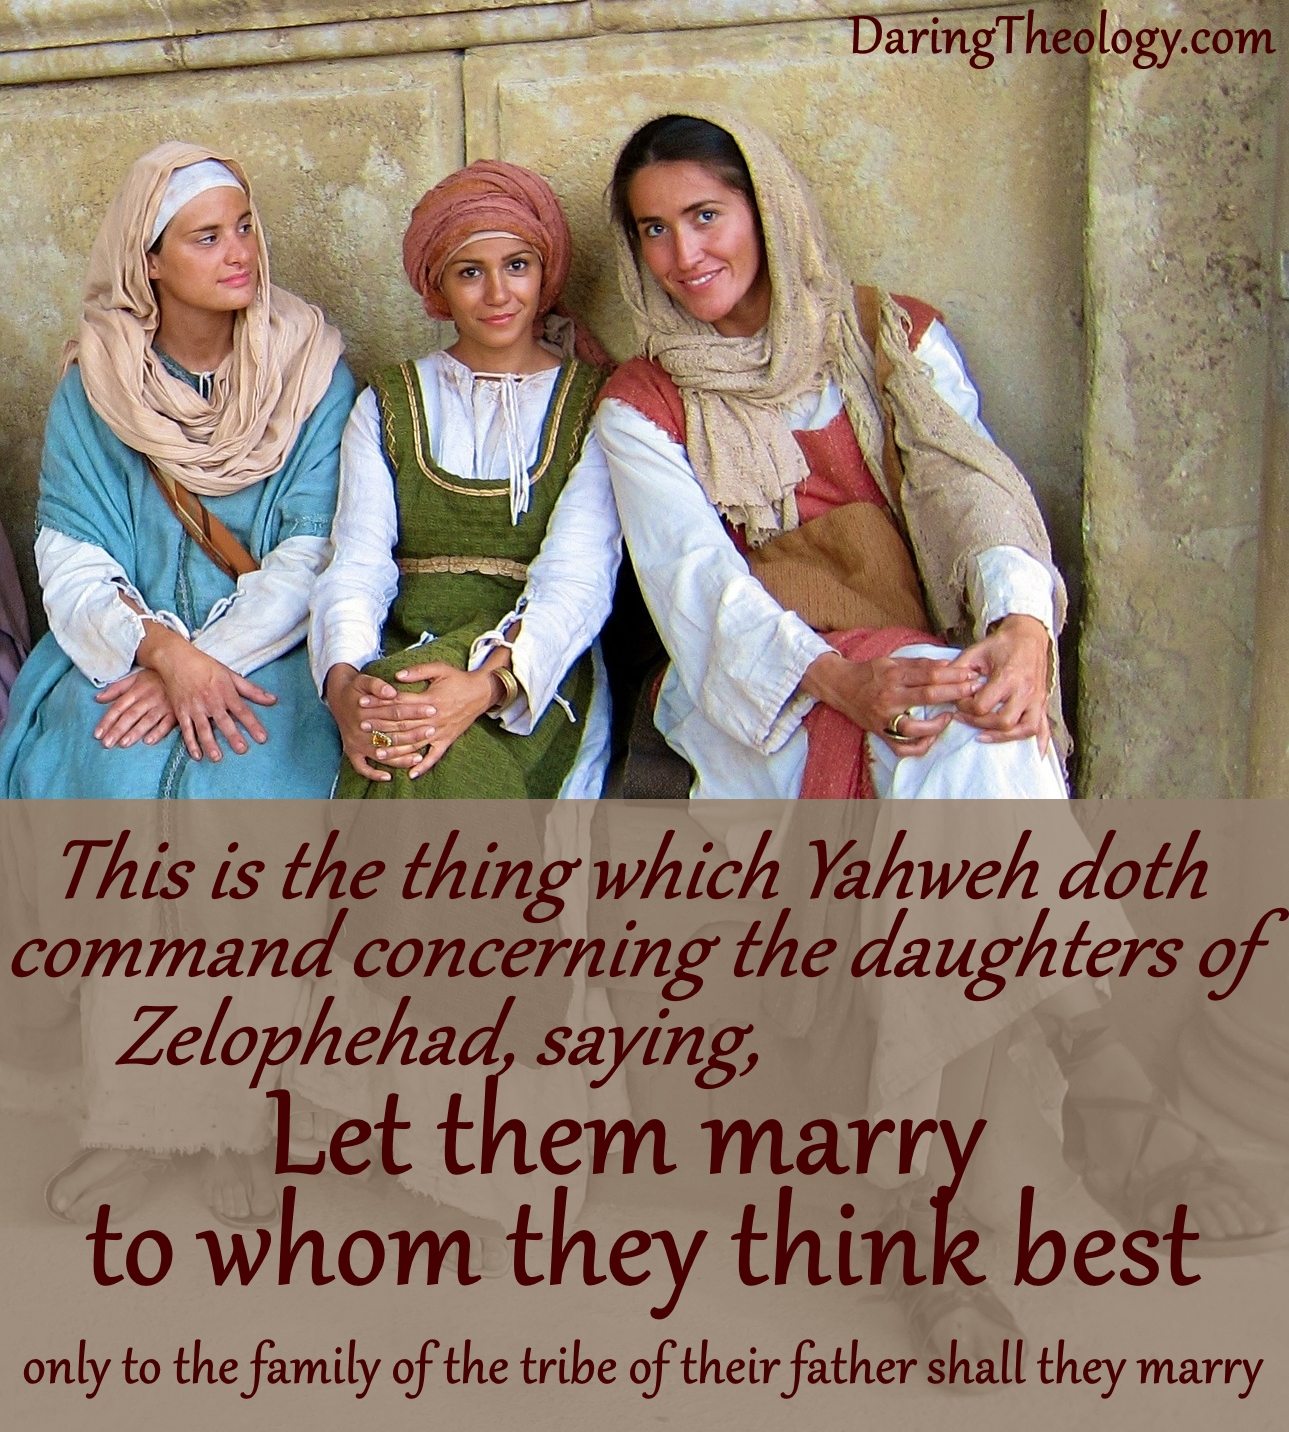 Let them marry to whom they think best